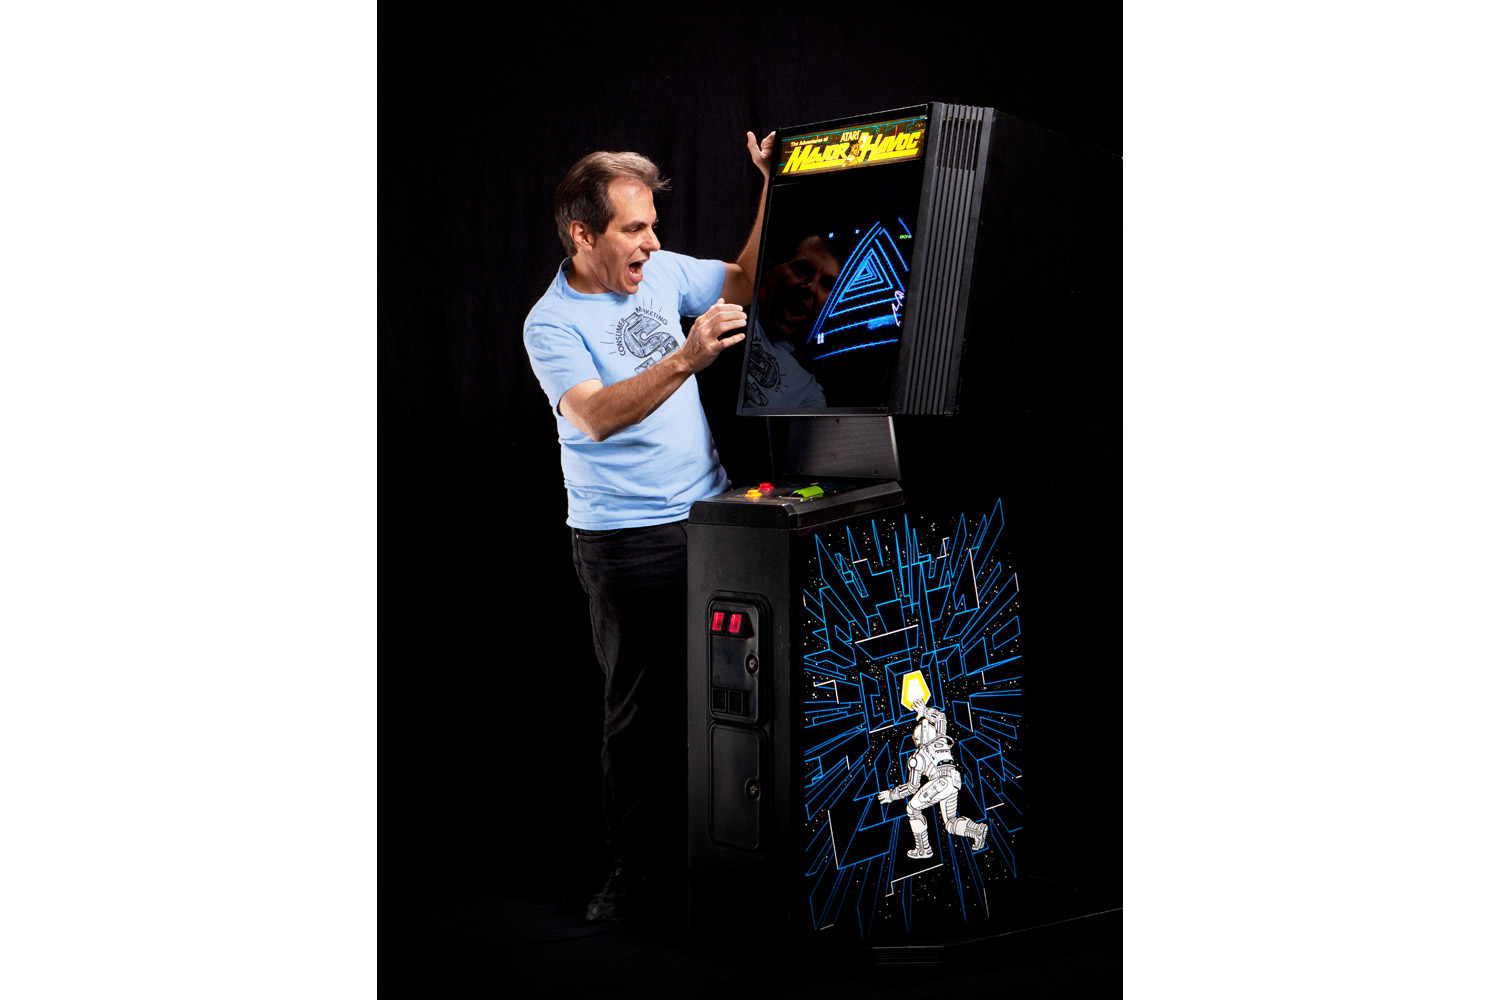 """Owen Rubin, Major Havoc (1983)                               The prolific Rubin is best known as the guy who made the volcano erupt in Battlezone. He also earned the nickname """"The Black Thumb"""" at Atari because he had a knack for making games crash. His curse makes him invaluable as a game tester at the newly formed company."""